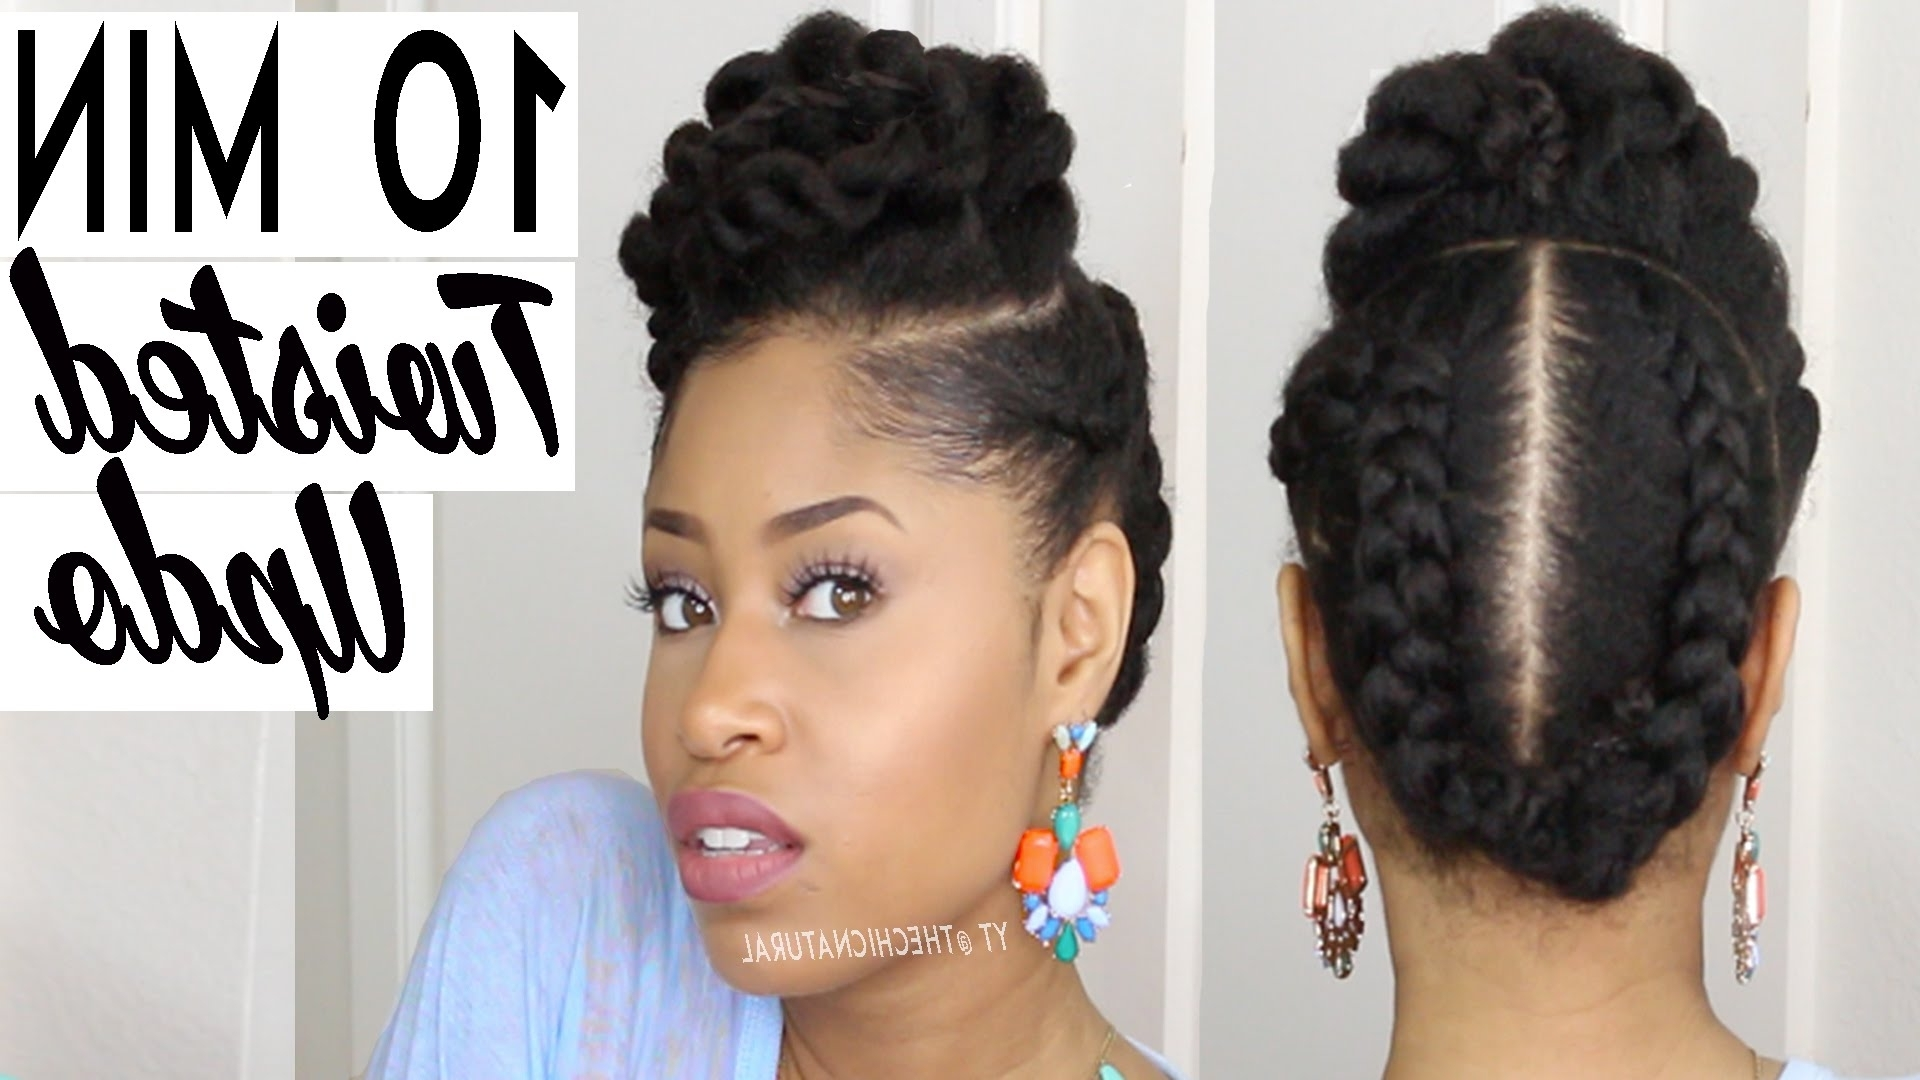 The 10 Minute Twisted Updo | Natural Hairstyle – Youtube Within Hair Twist Updo Hairstyles (View 12 of 15)